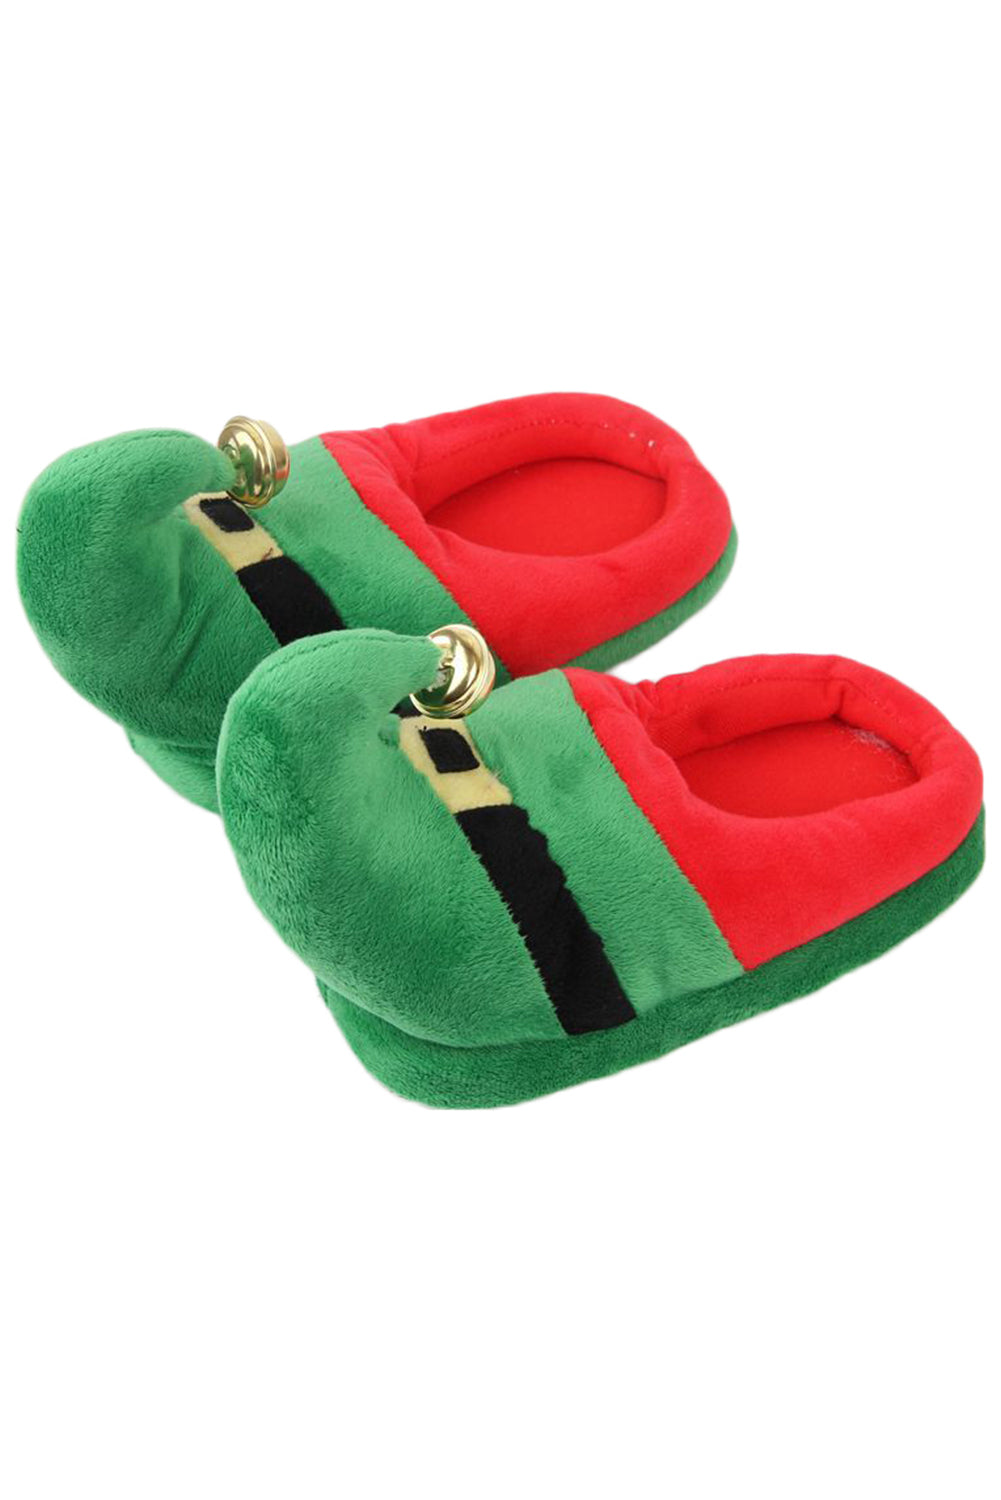 84eab434b15 ... Kids Adult Christmas Cotton Home Slippers Winter Warm Indoor Soft Shoes  ...